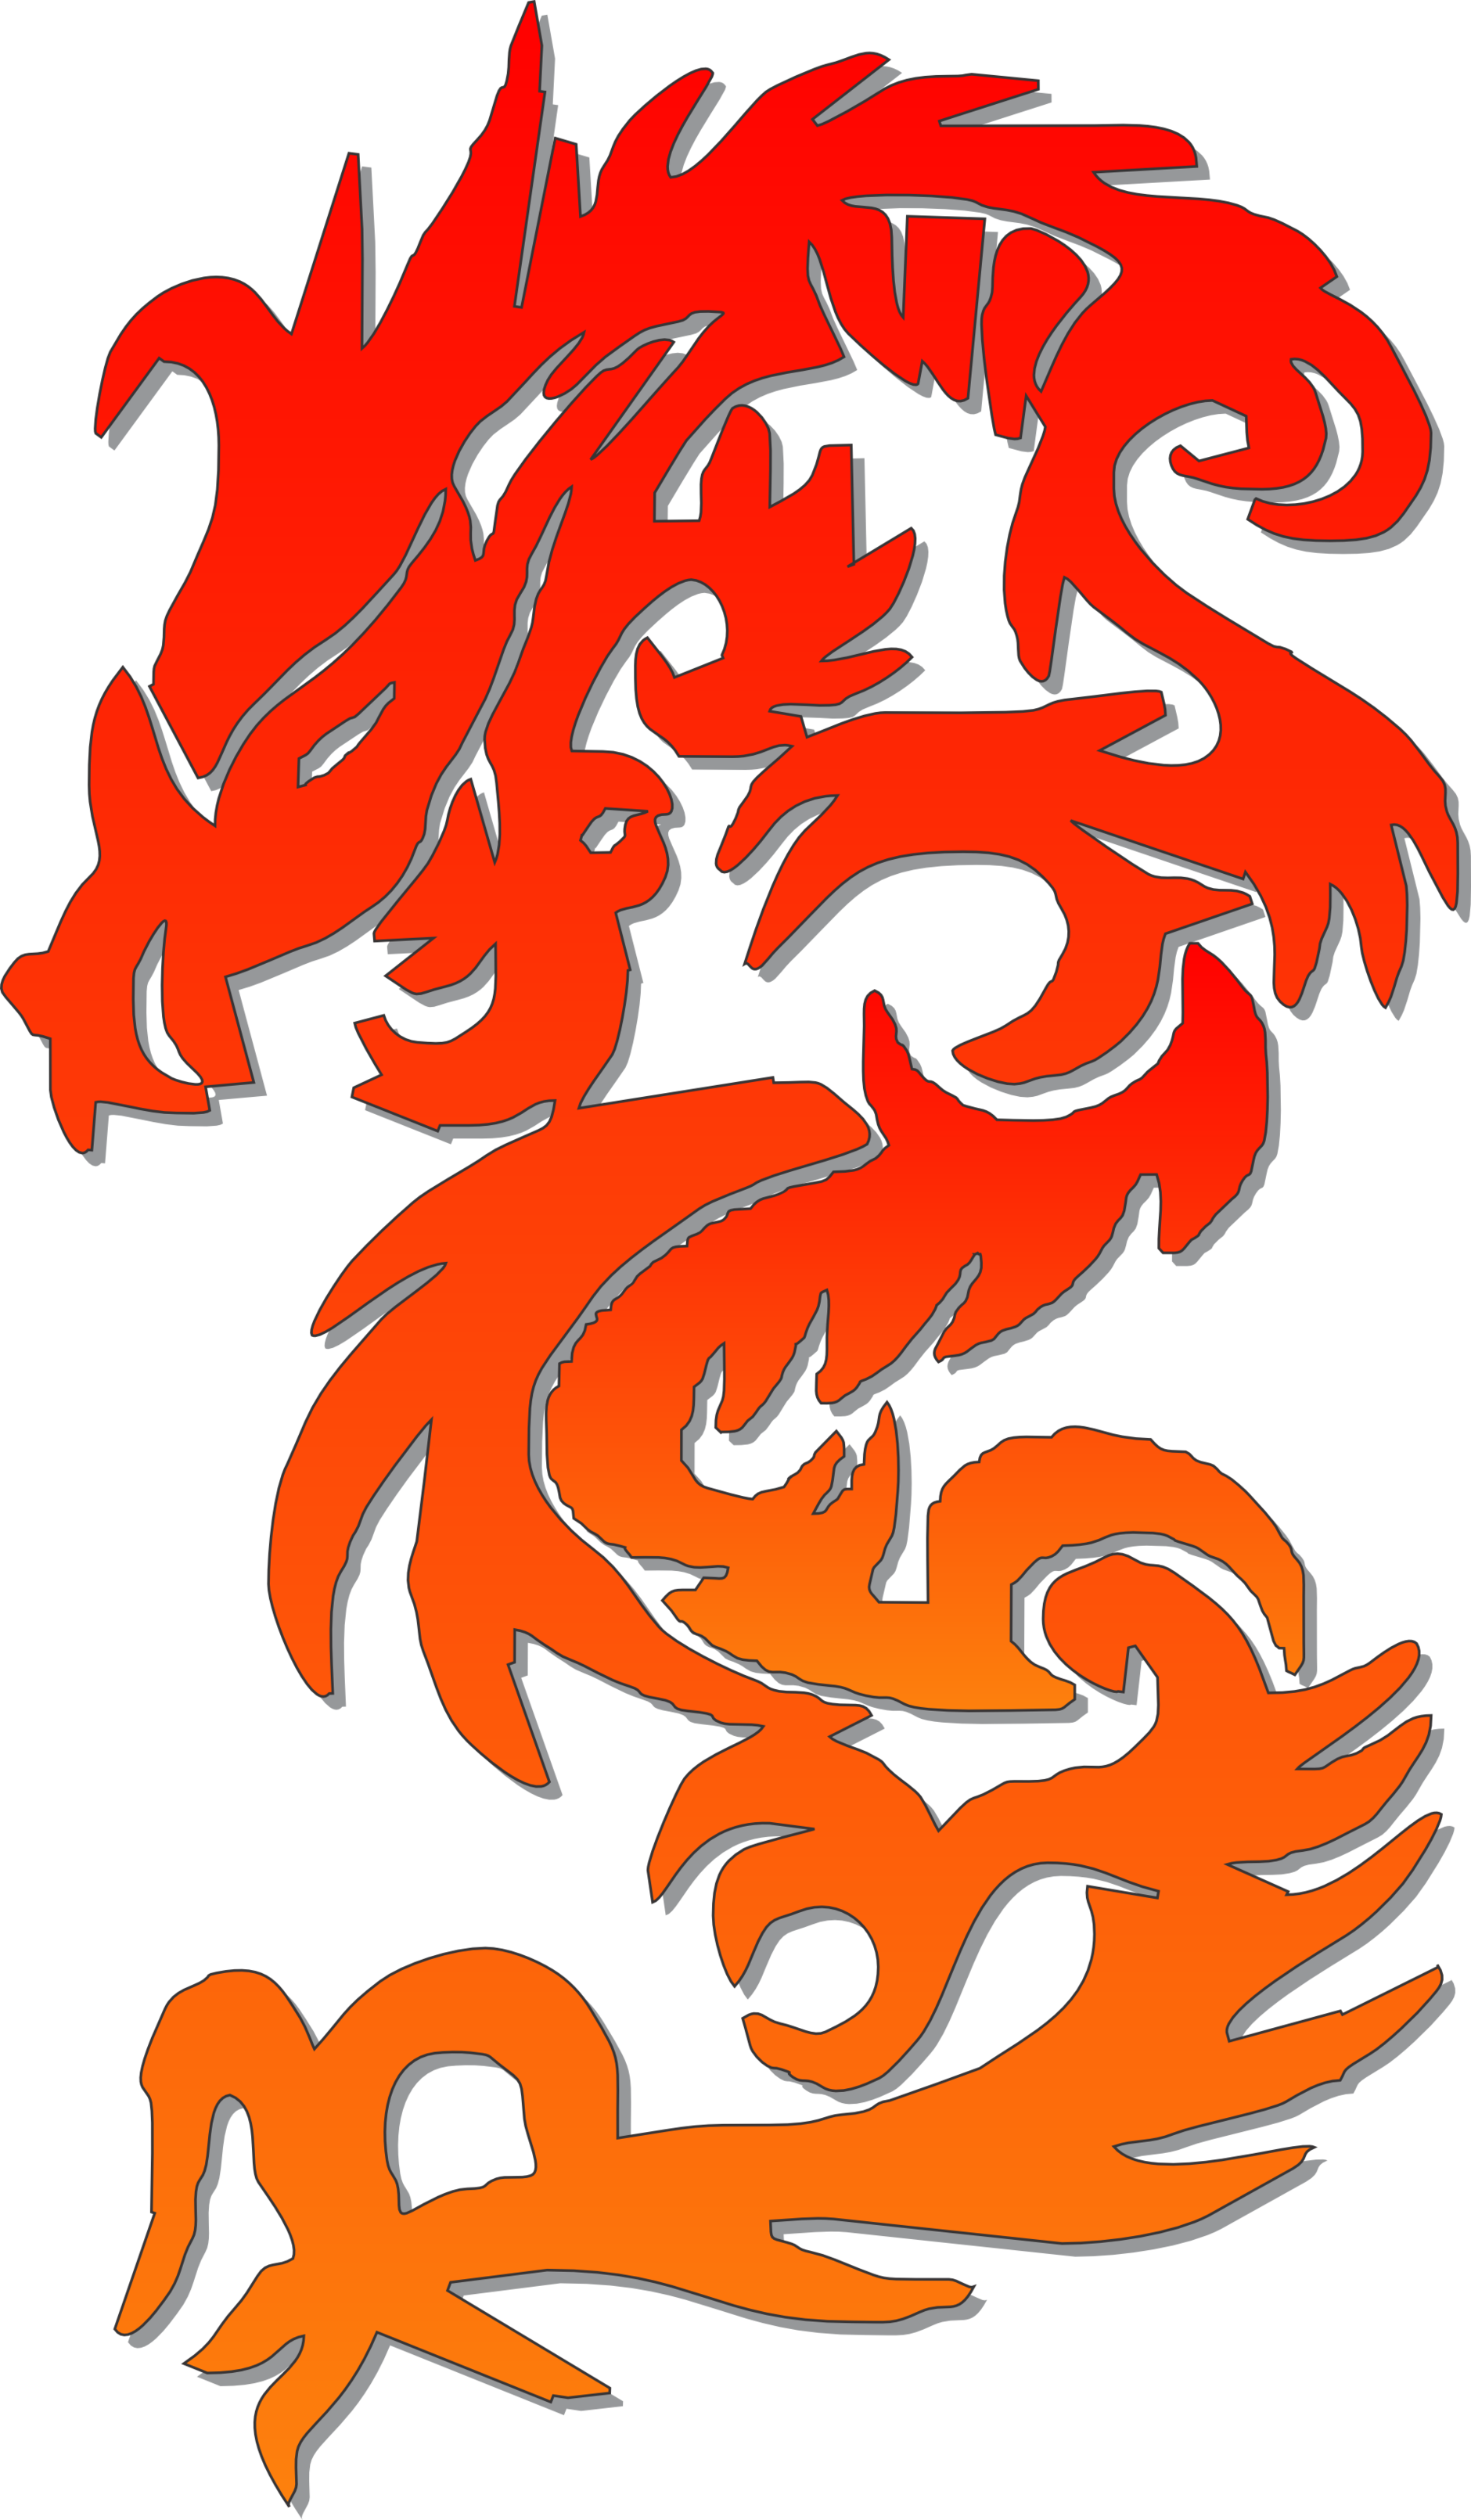 082cd3636 Chinese Dragon clipart chinese calendar #1. Chinese Dragon clipart chinese  calendar #1 Dragon Head, Red ...